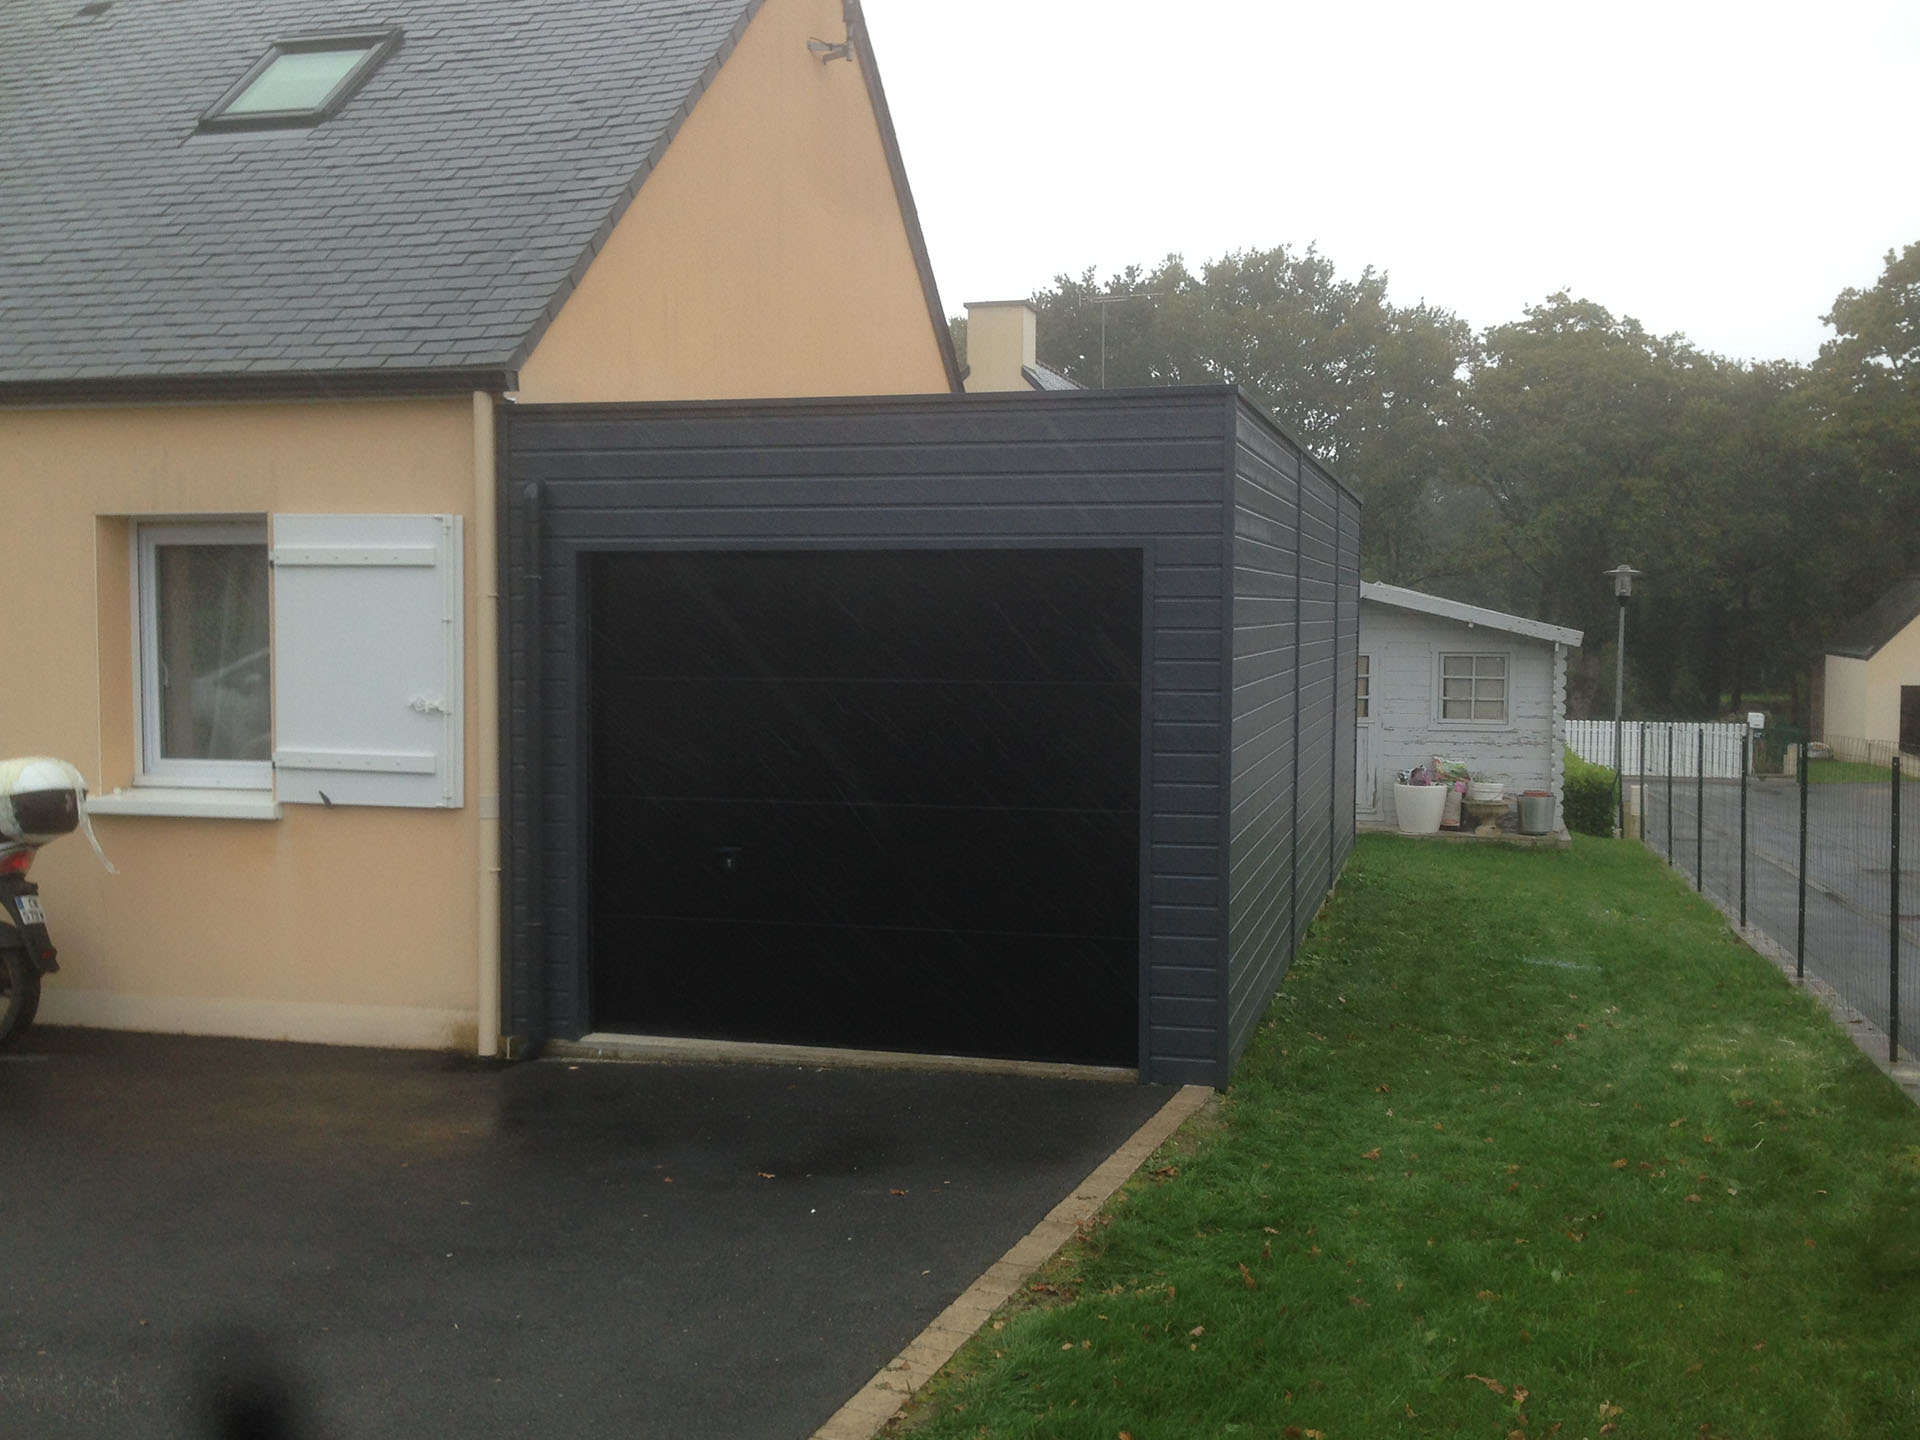 Maison Toit Plat Ou Traditionnel Garage Sur Mesure En Bretagne